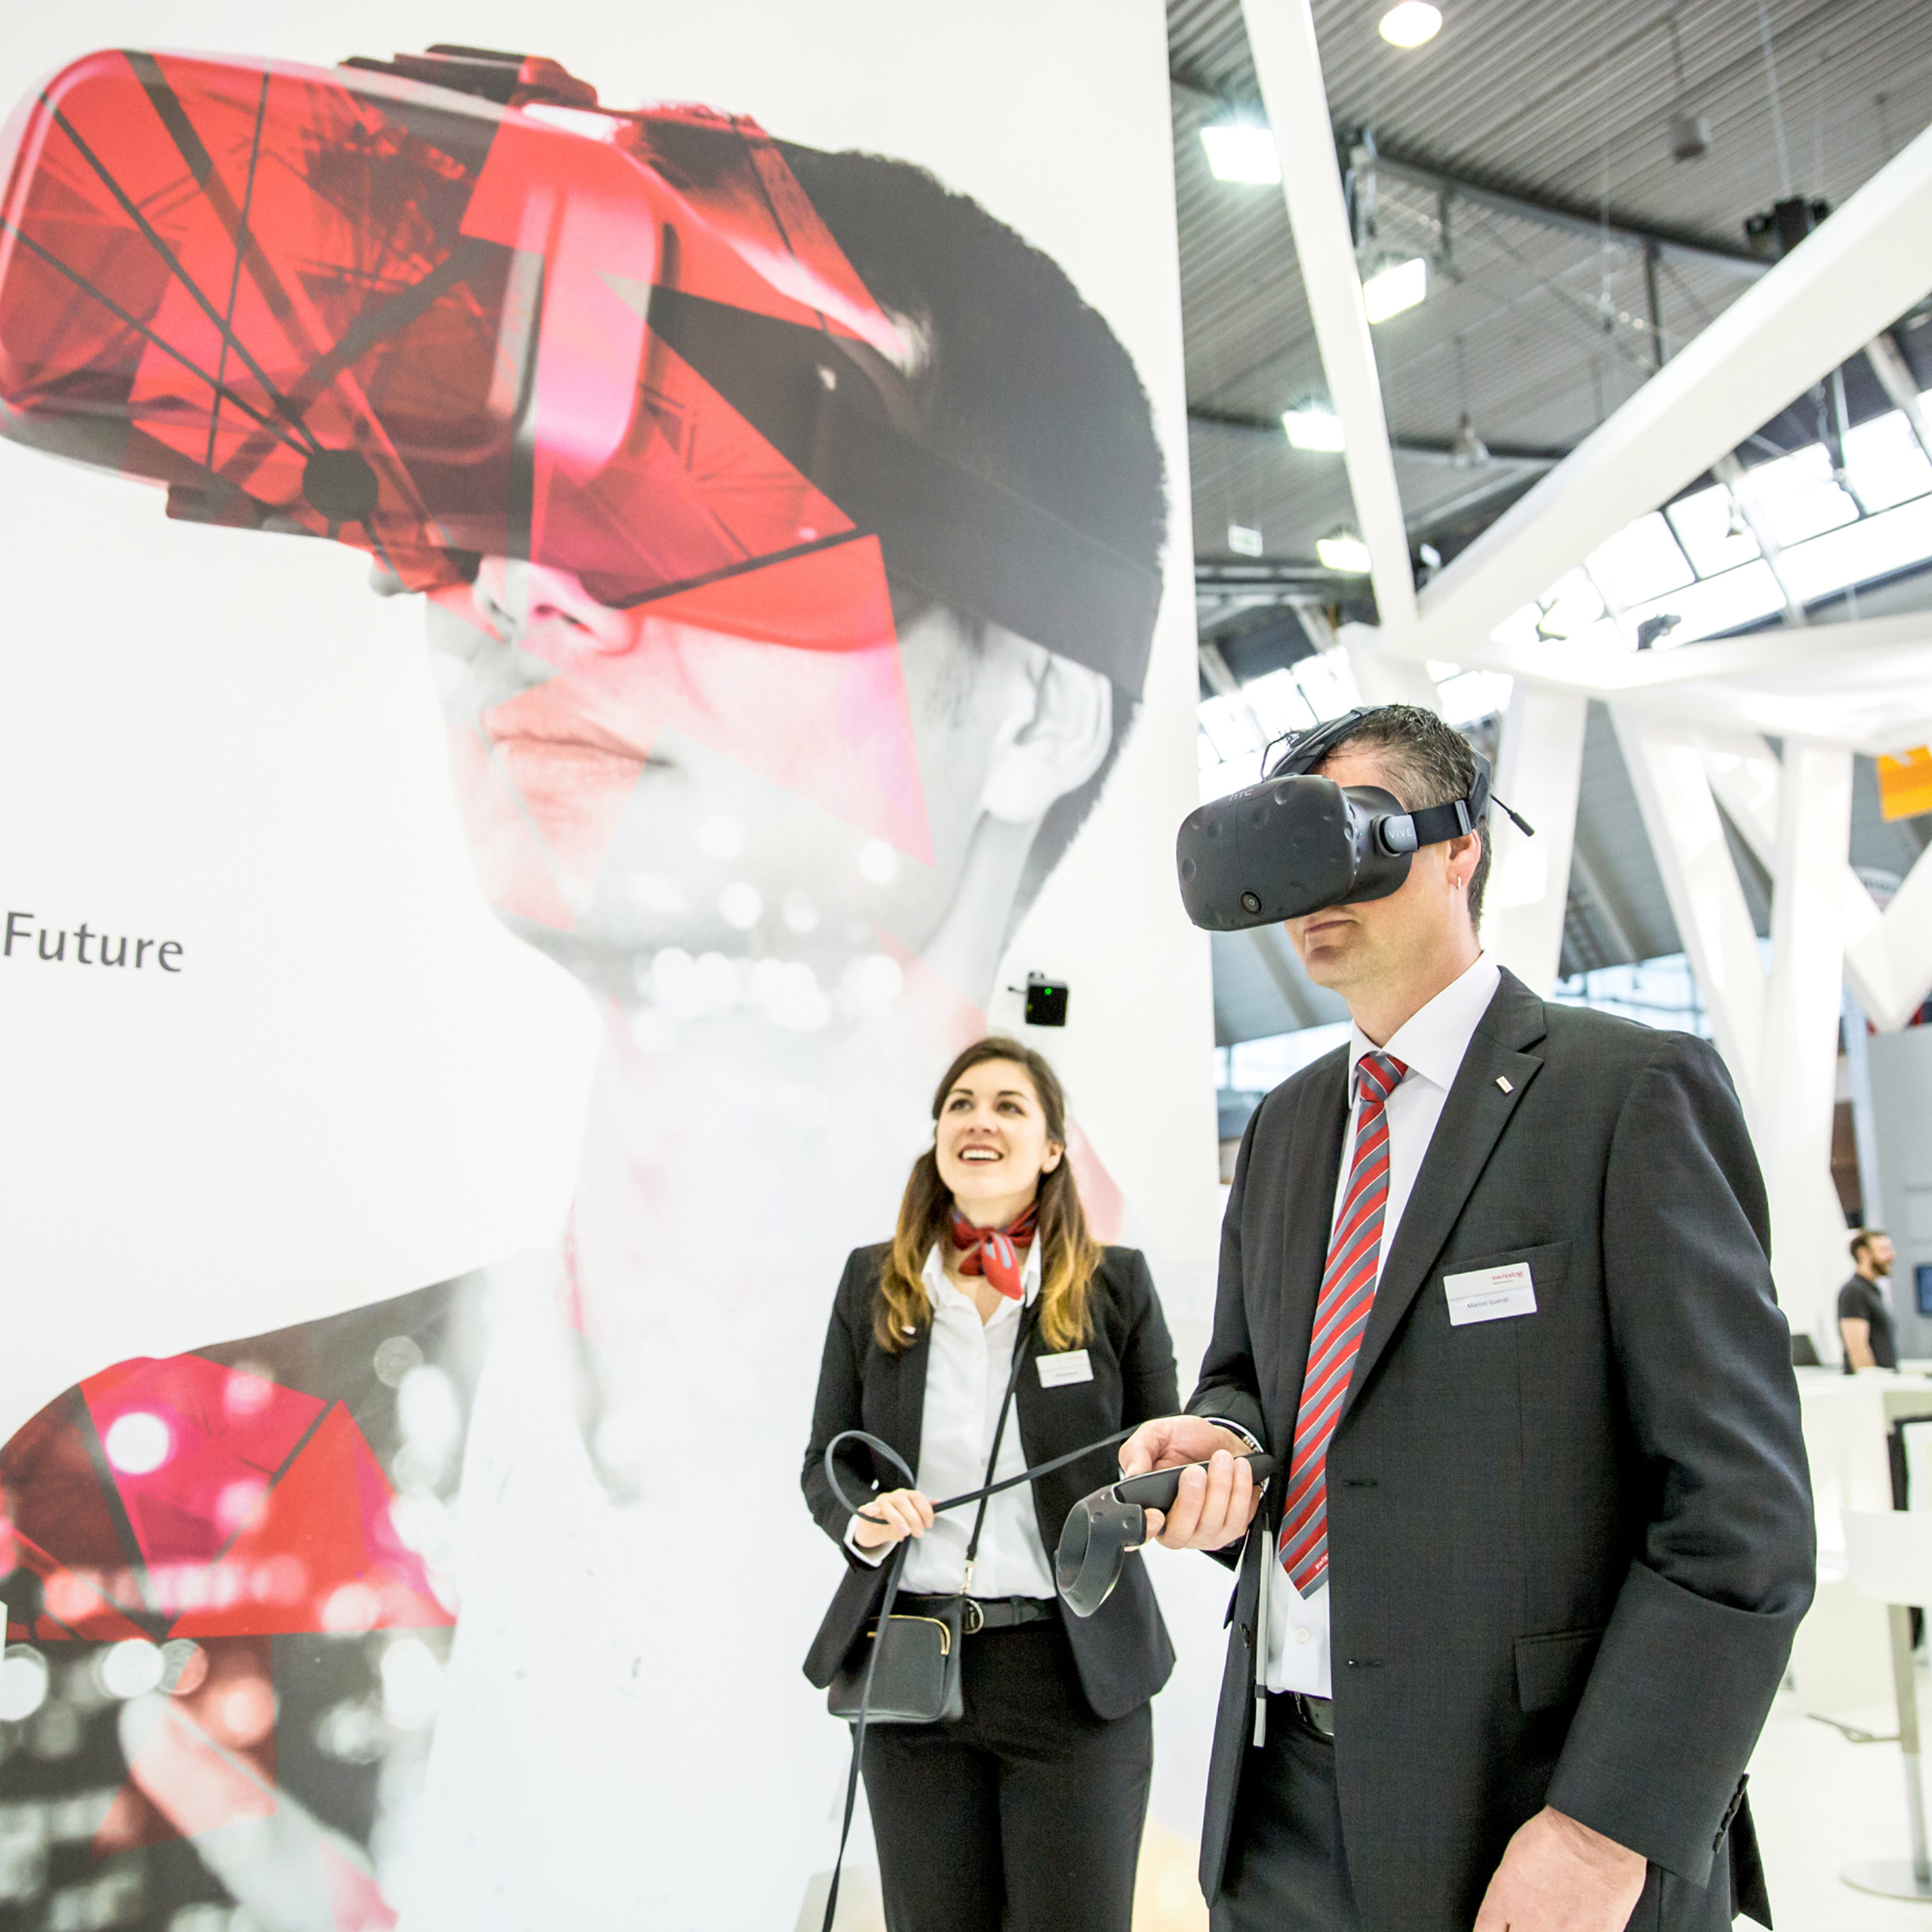 Materials Handling Middle East - Materials handling suppliers turn to virtual reality 3D animation as educational tool for latest warehouse technologies